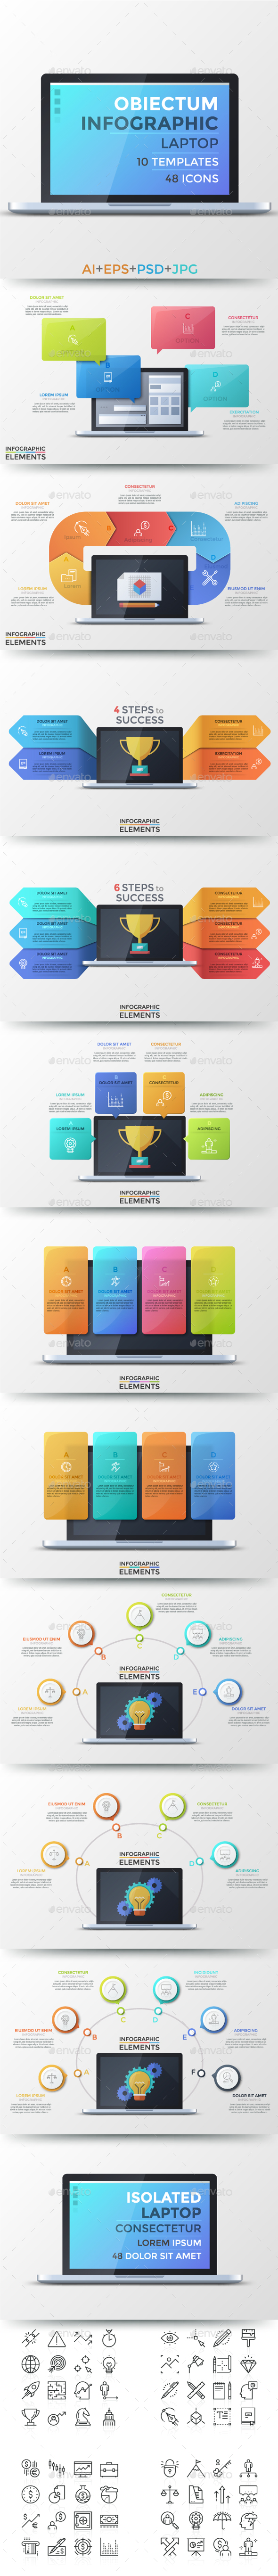 GraphicRiver Obiectum Infographic Laptop 21137924